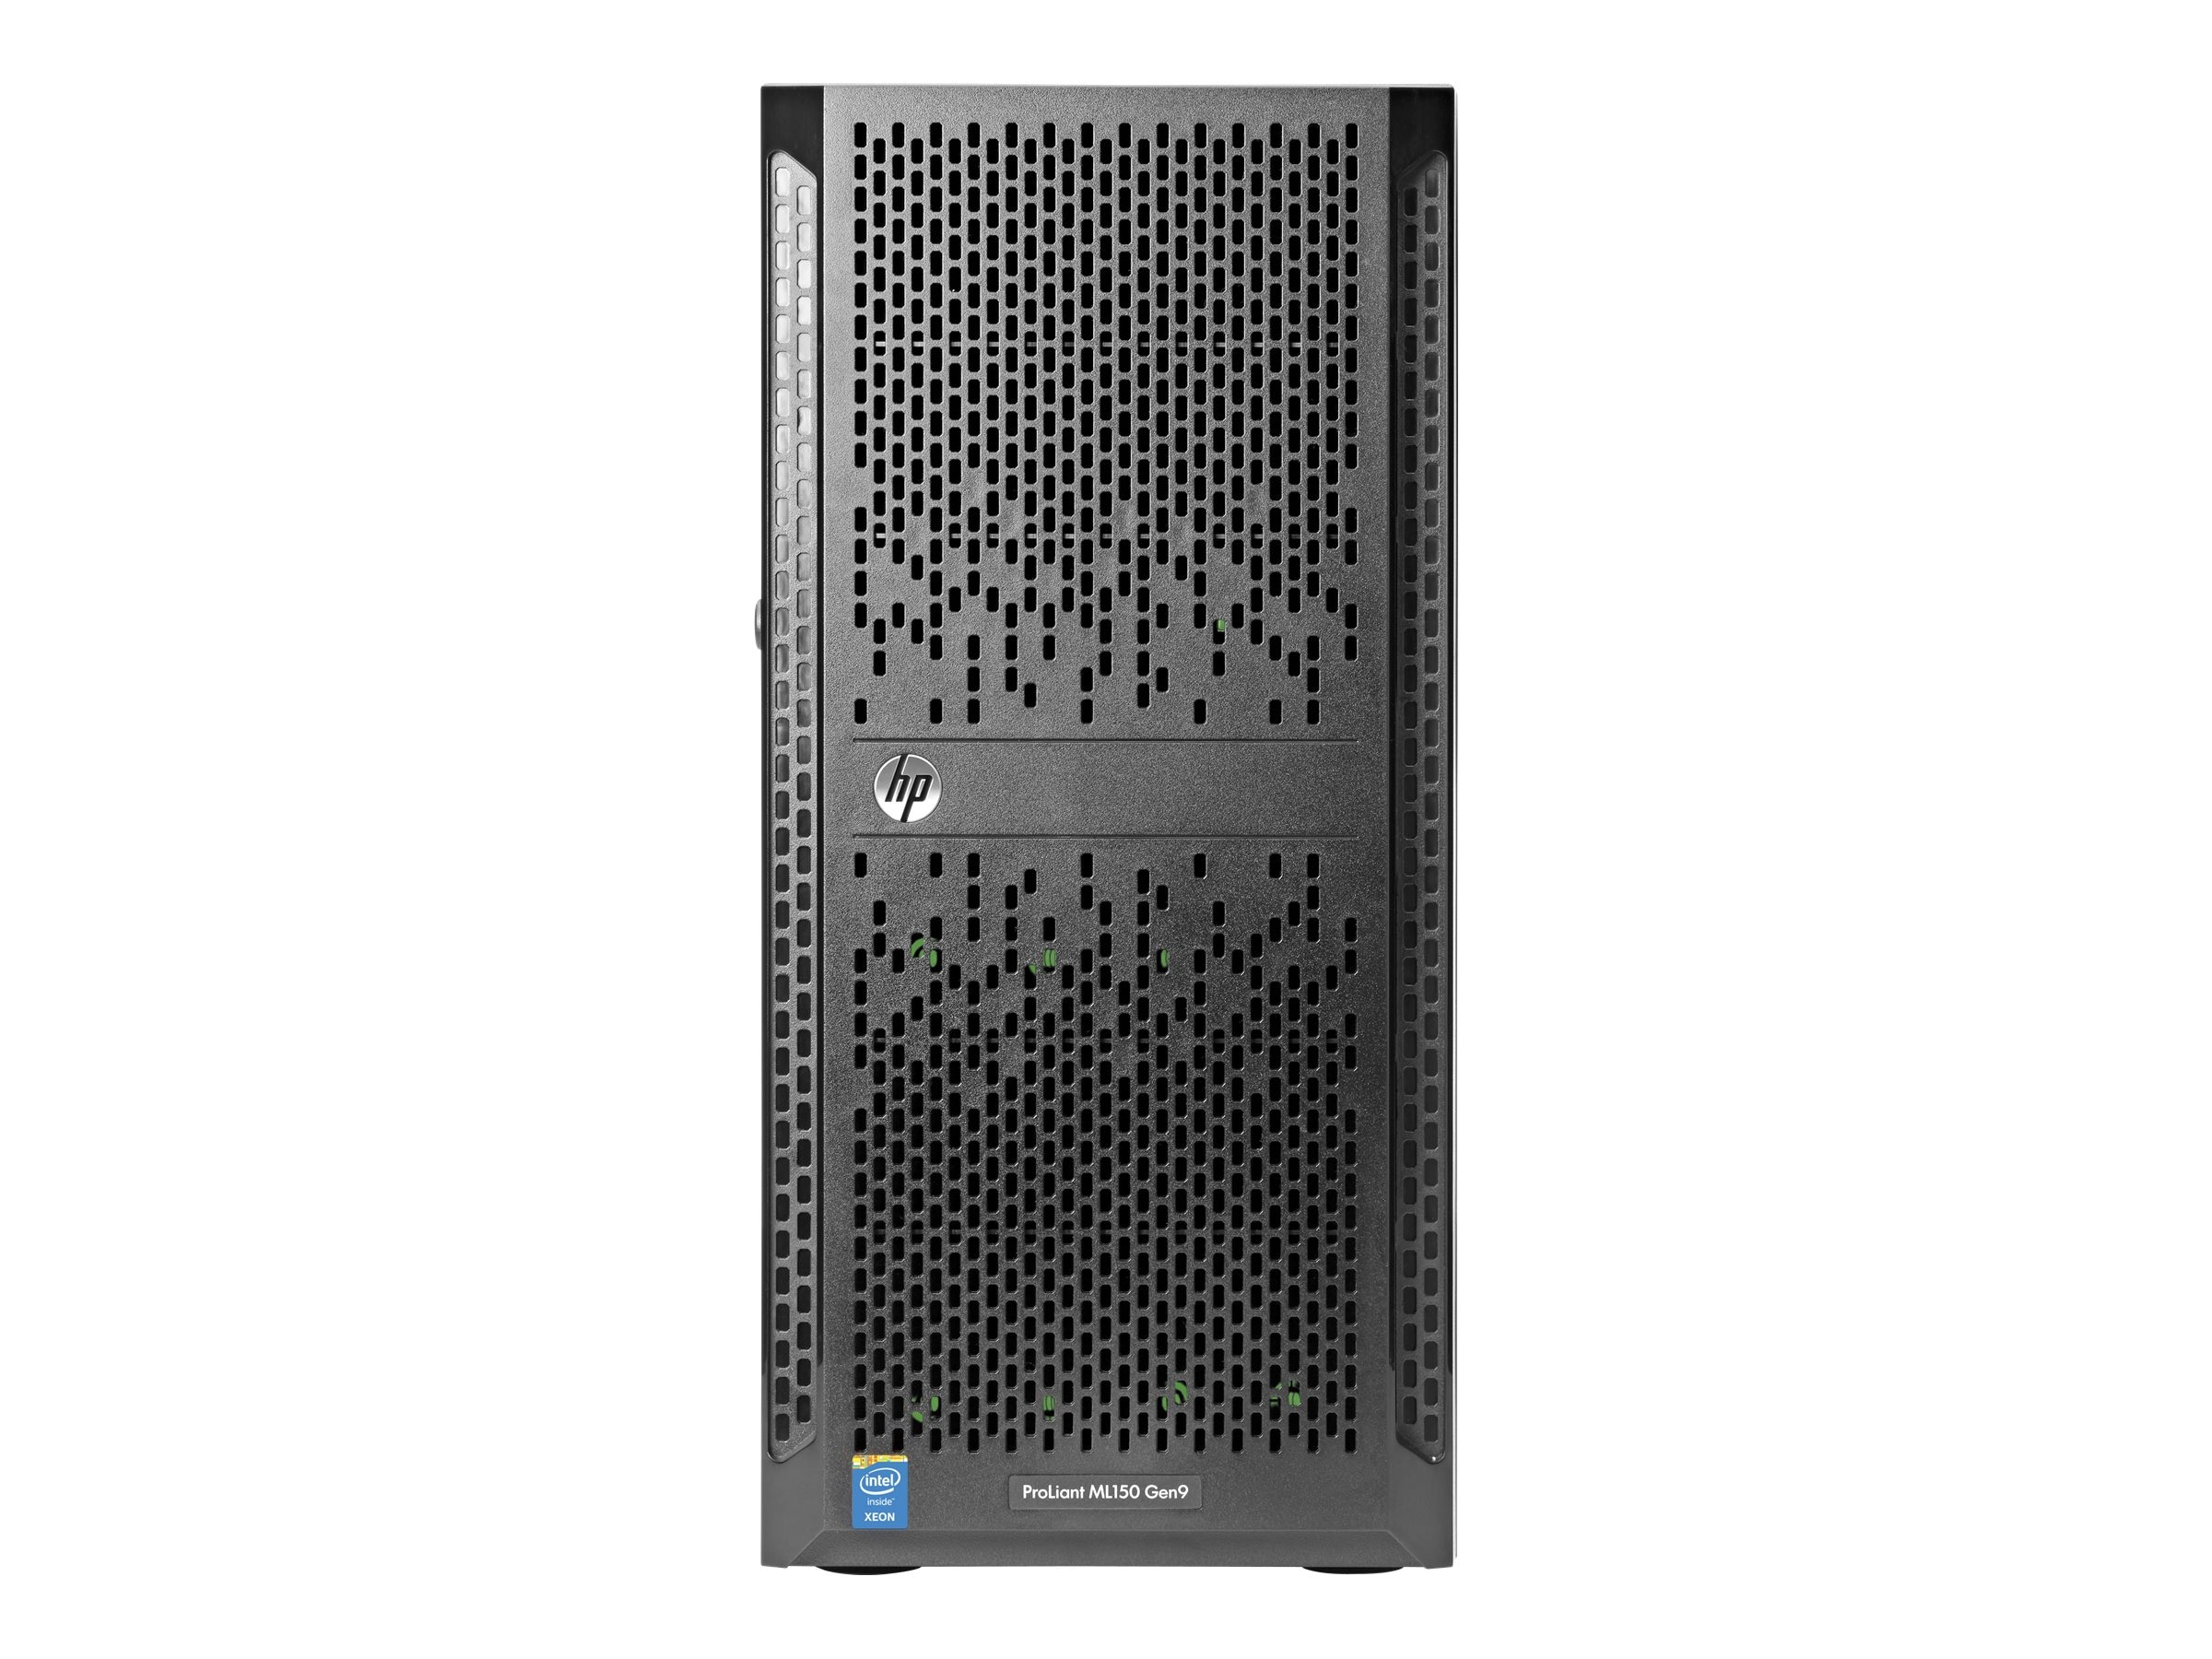 Hewlett Packard Enterprise 834606-001 Image 2